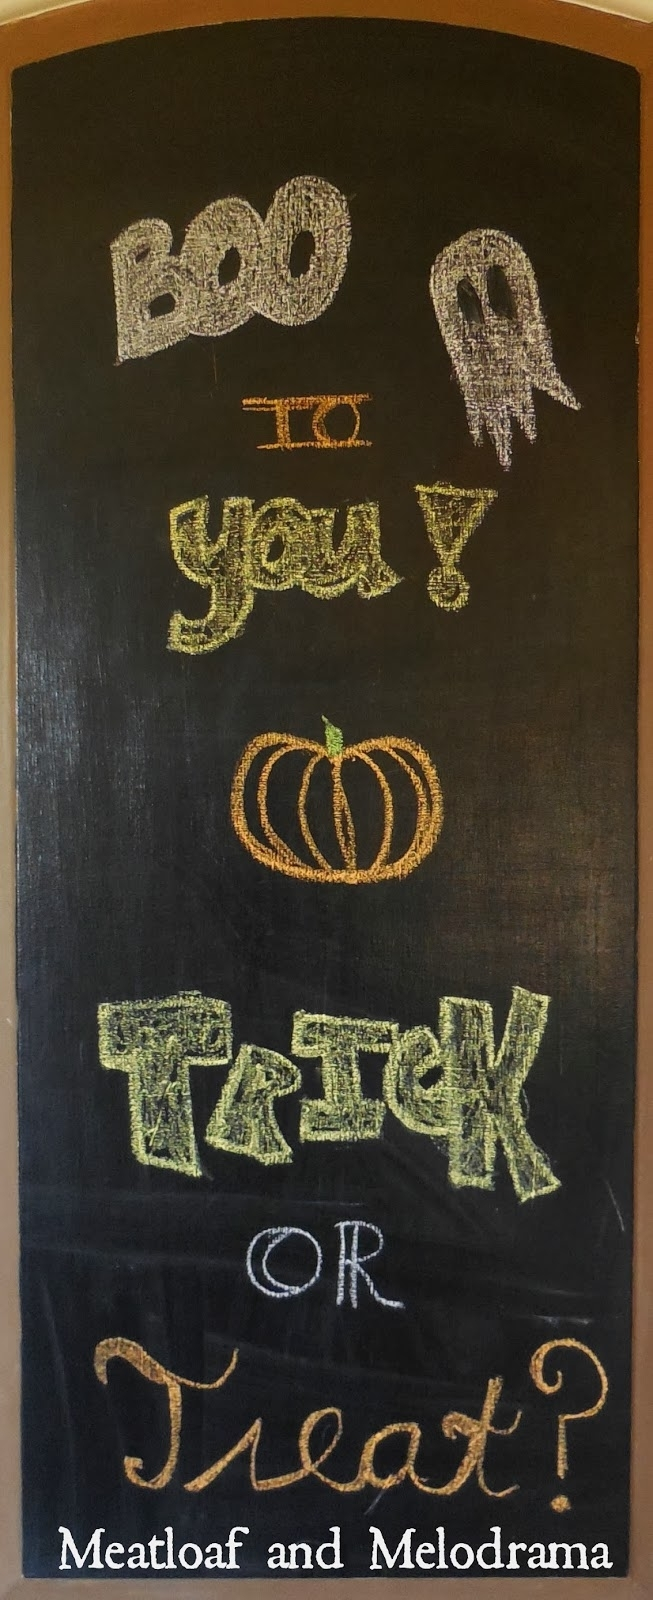 Chalkboard Paint And Wall Art - Meatloaf And Melodrama intended for Chalkboard Wall Art (Image 5 of 20)